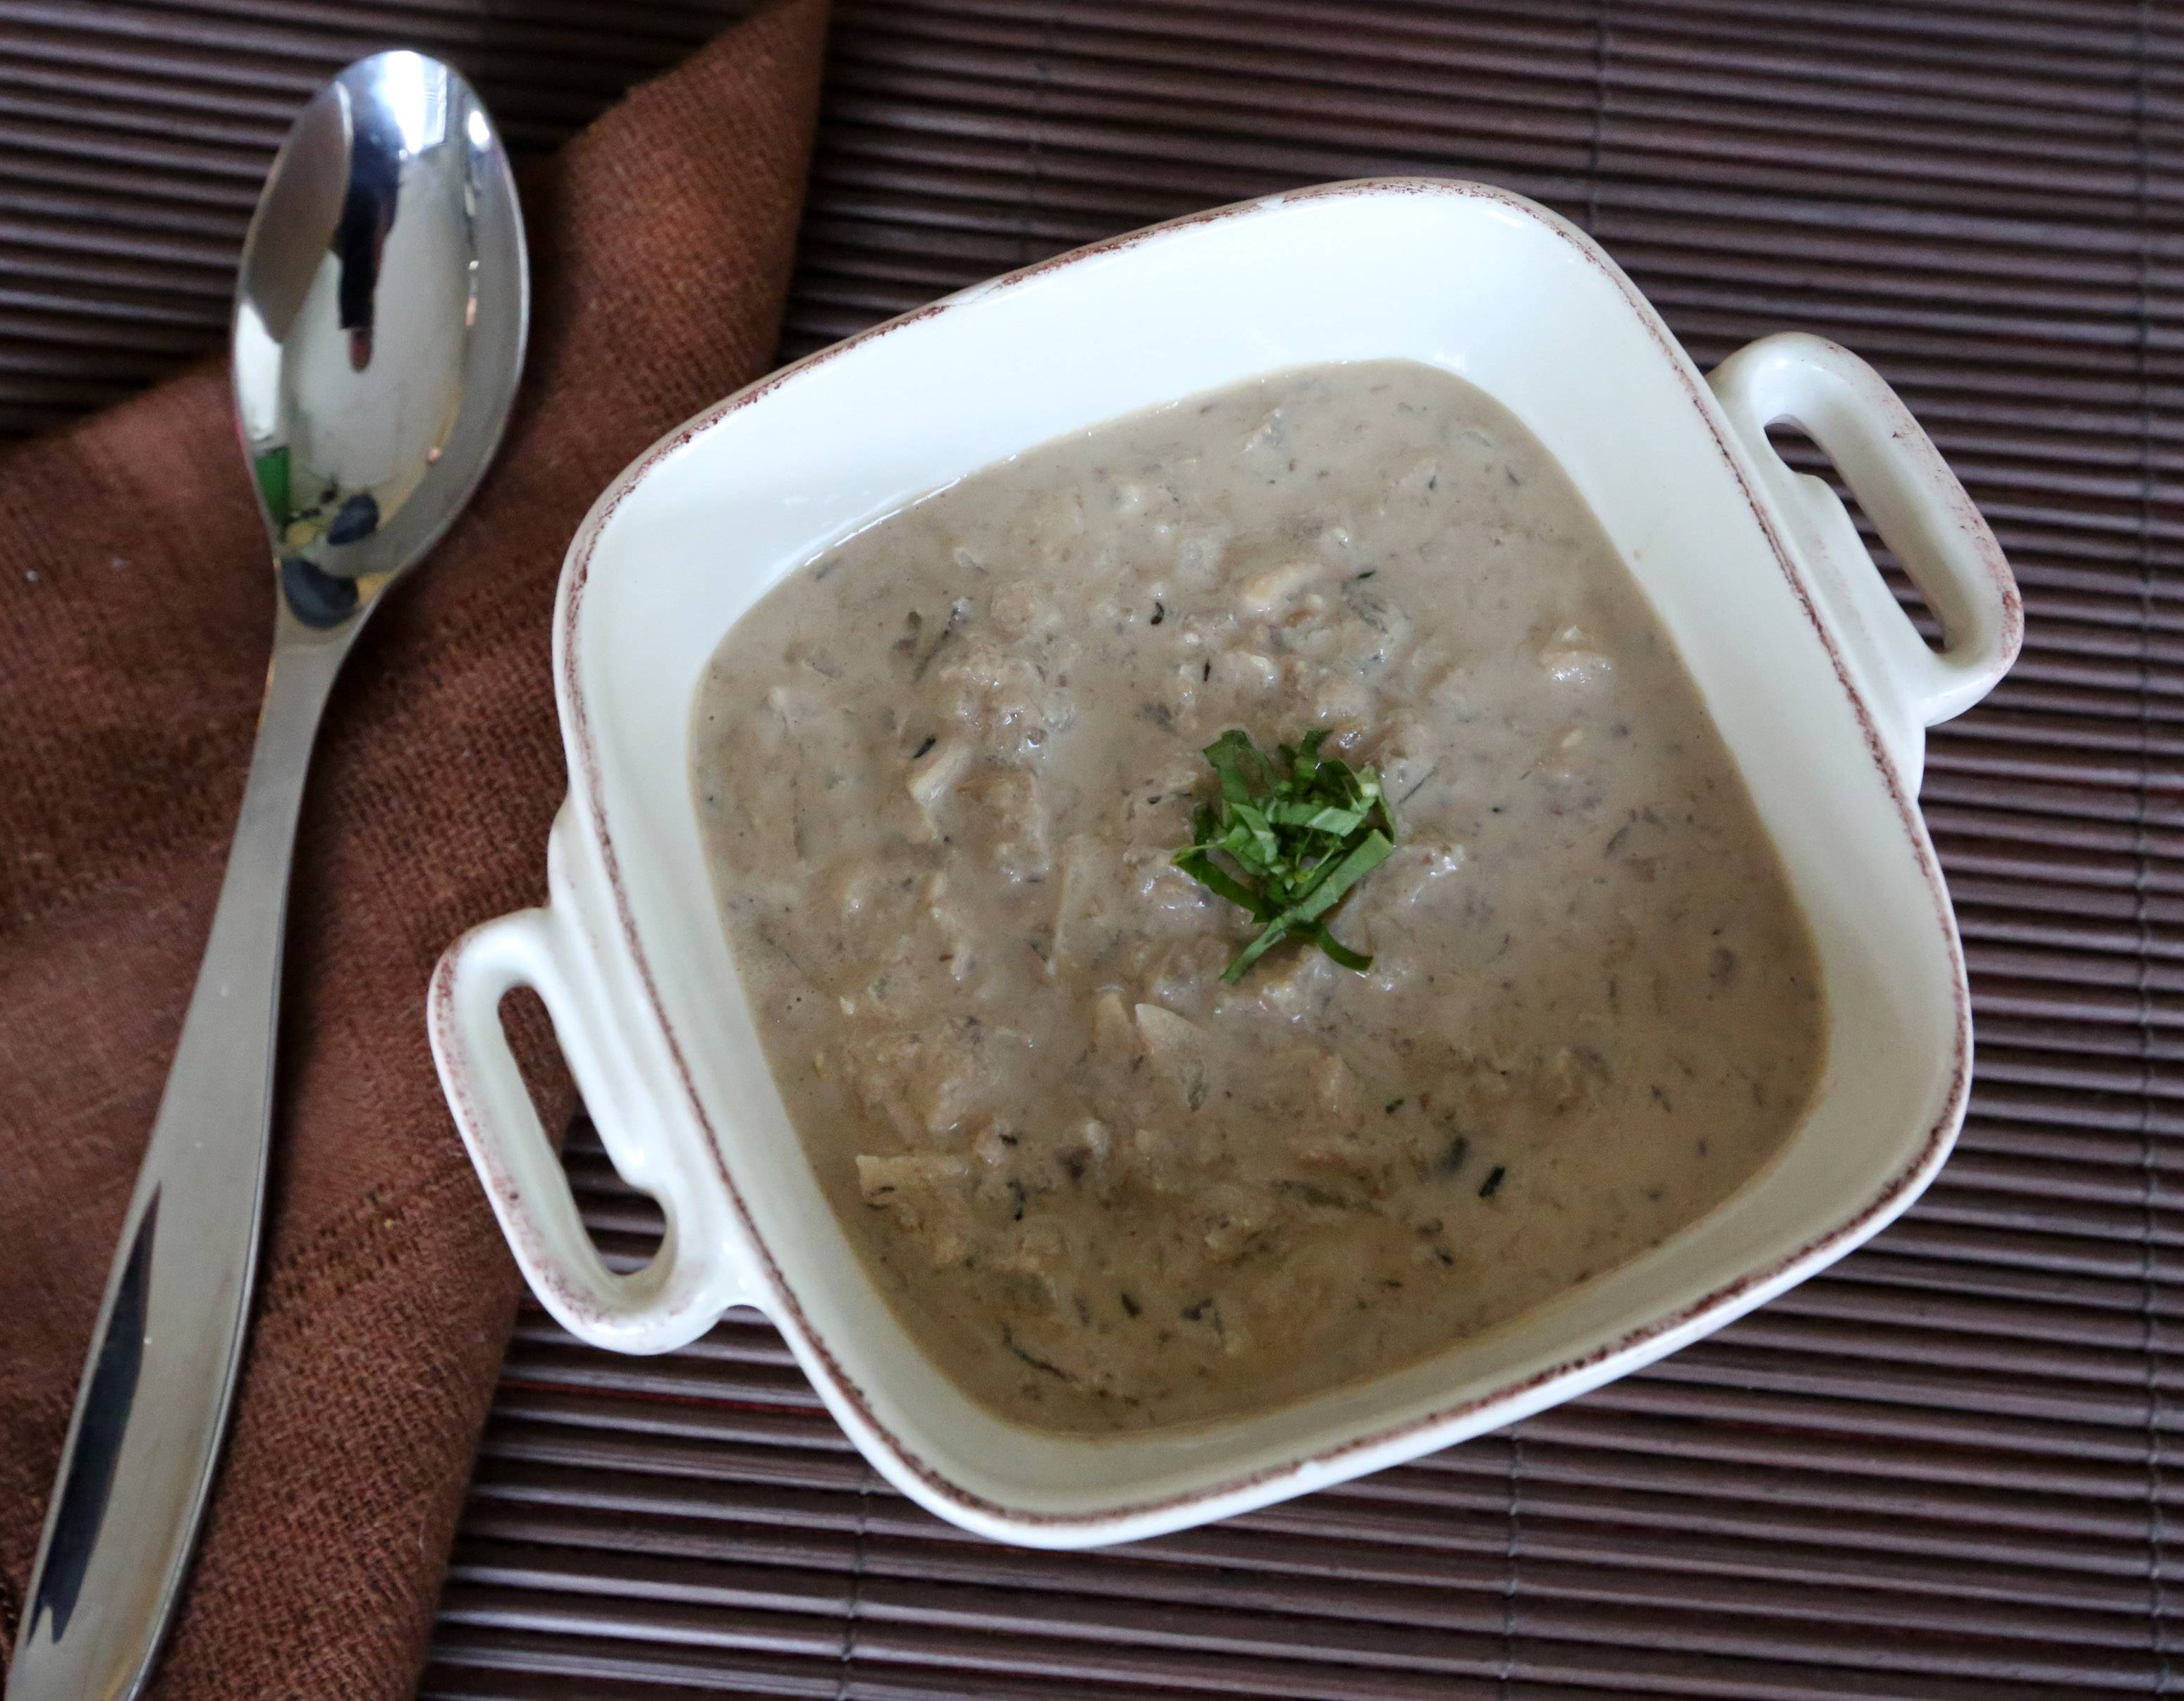 Walnut paste gives mushroom soup creaminess sans cholesterol